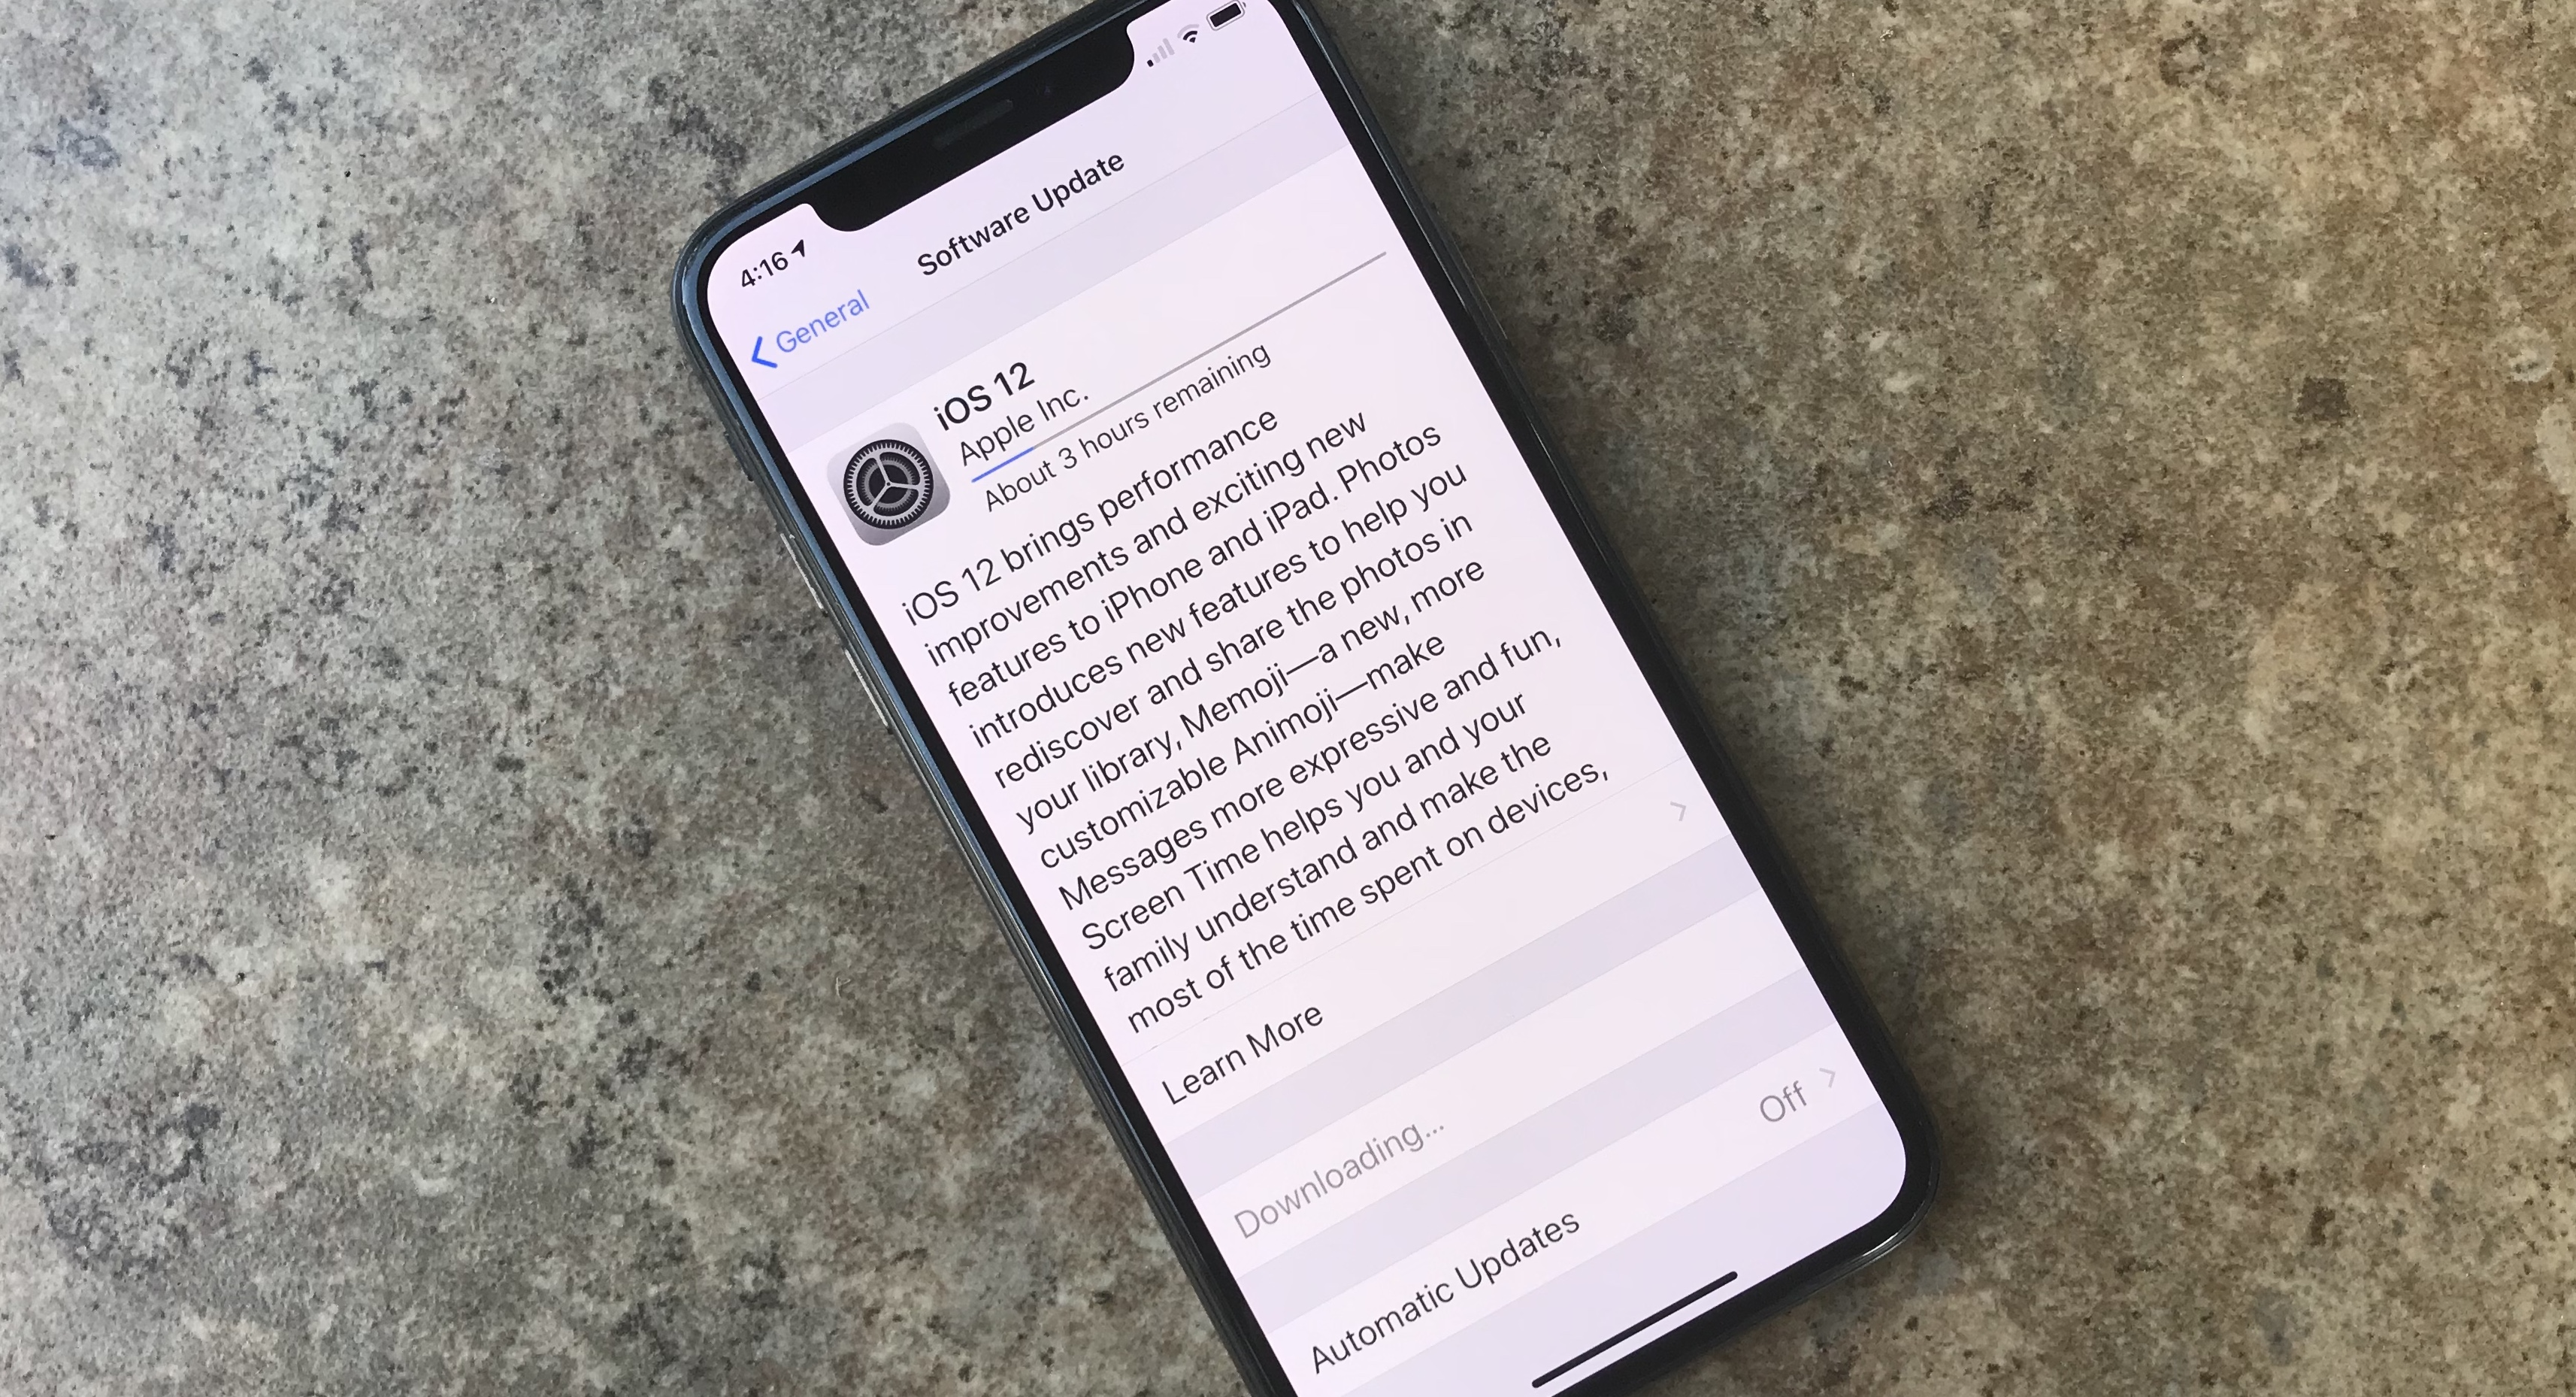 The official iOS 12 release date is next week, but you can download it now.